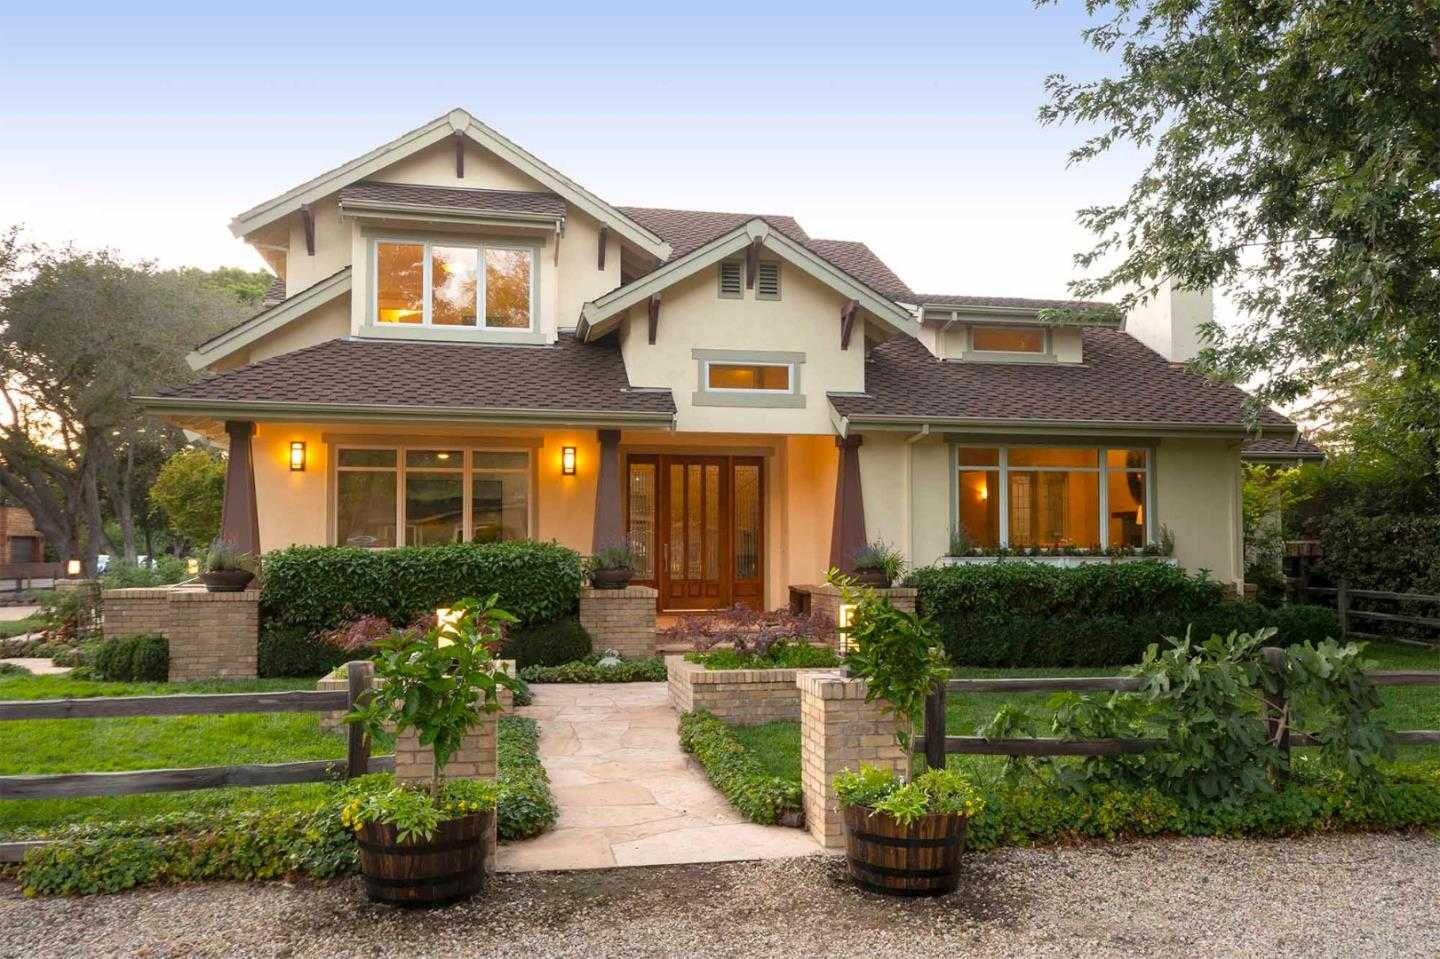 $5,495,000 - 5Br/6Ba -  for Sale in Palo Alto